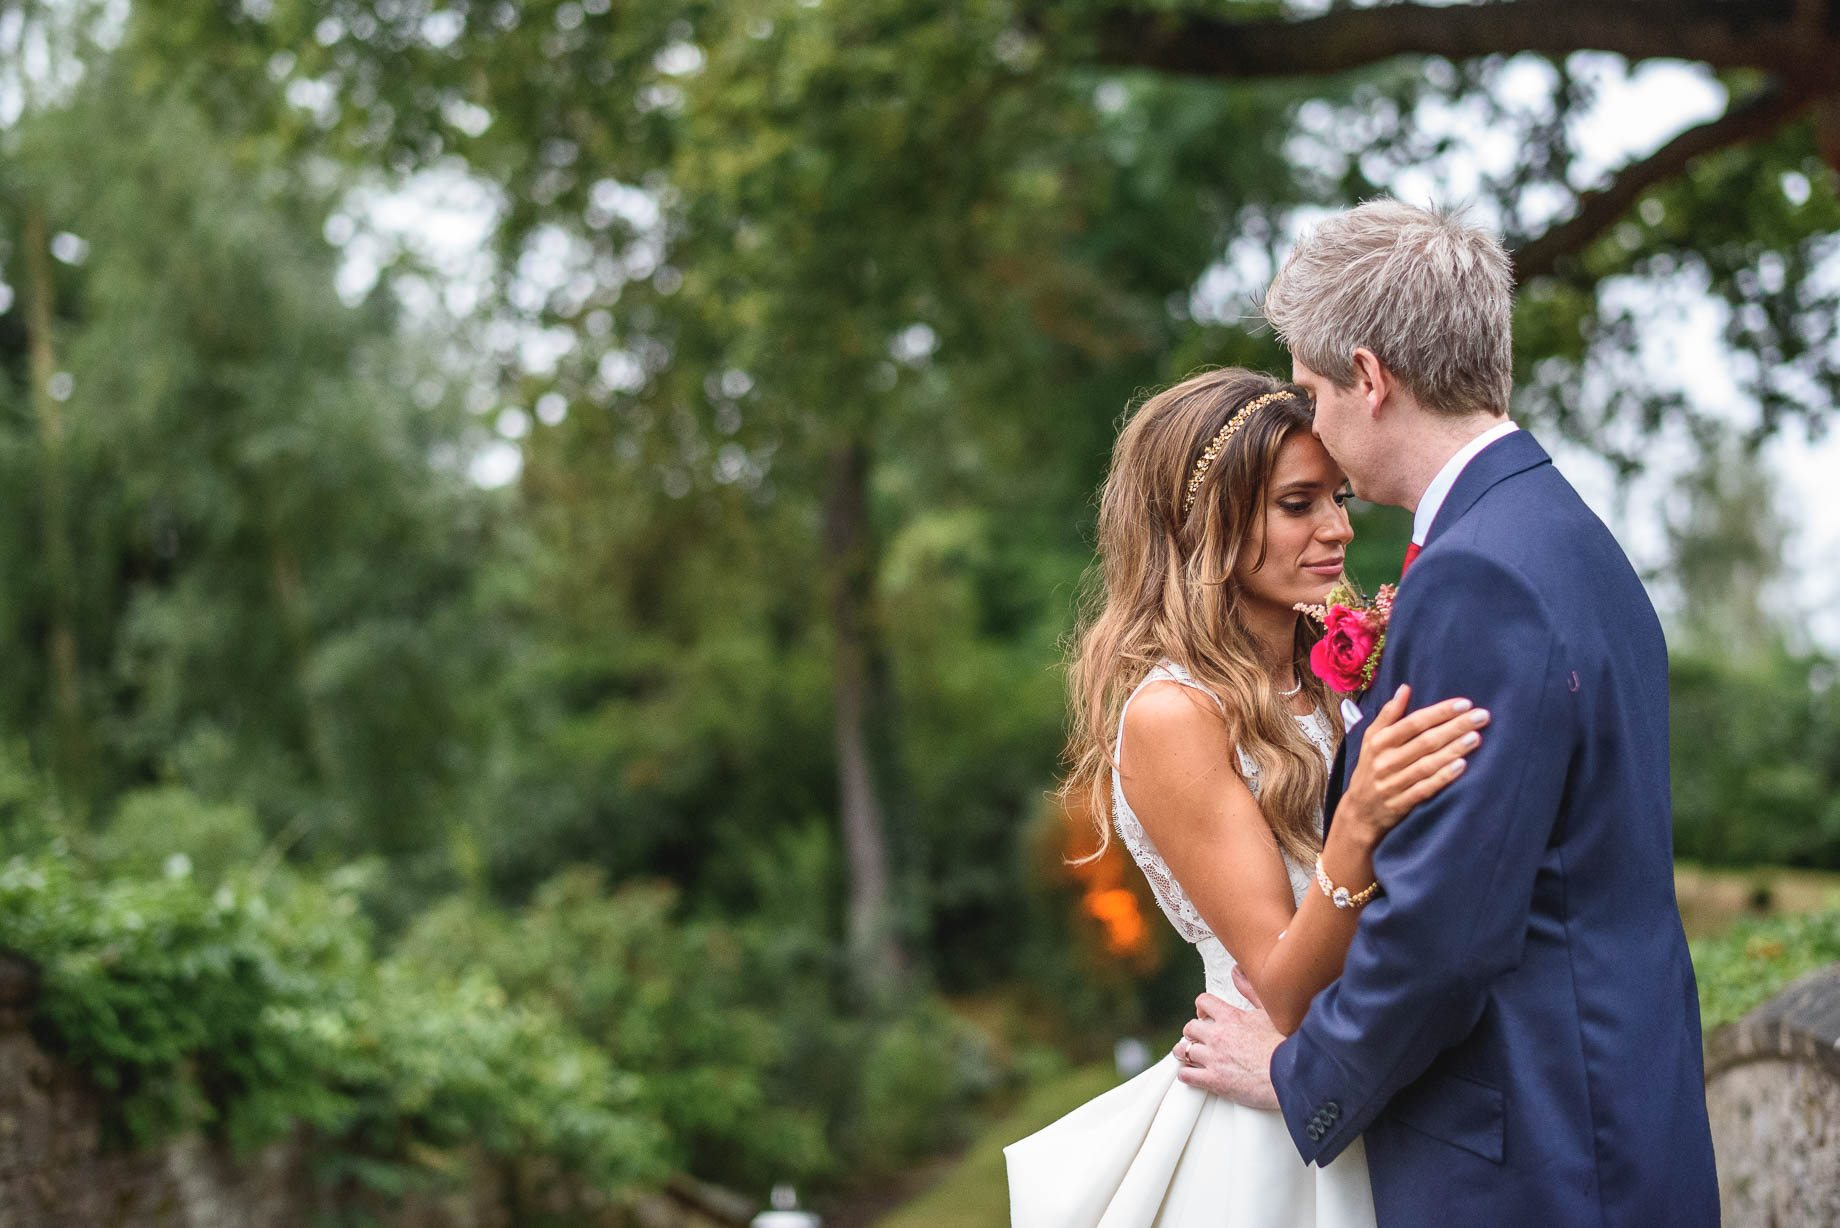 surrey-wedding-photography-guy-collier-photography-claire-and-tom-187-of-227